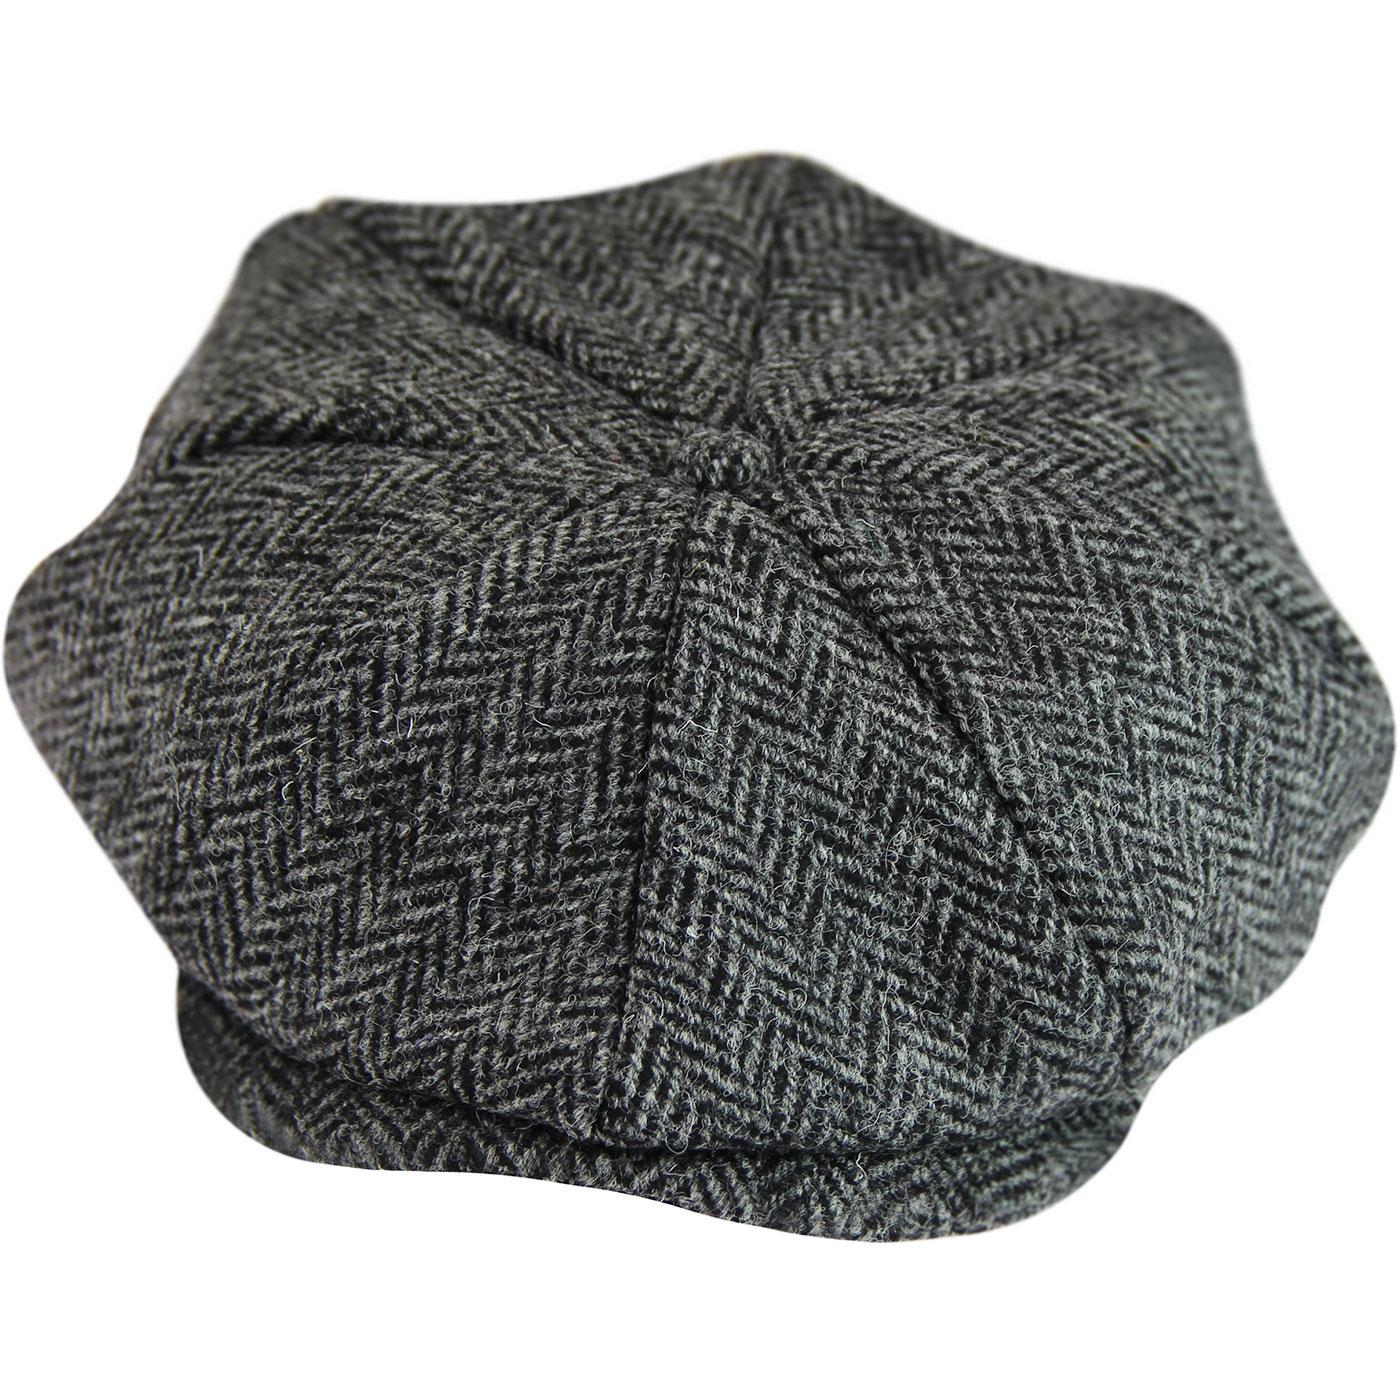 GIBSON LONDON Retro Herringbone Tweed Gatsby Hat B